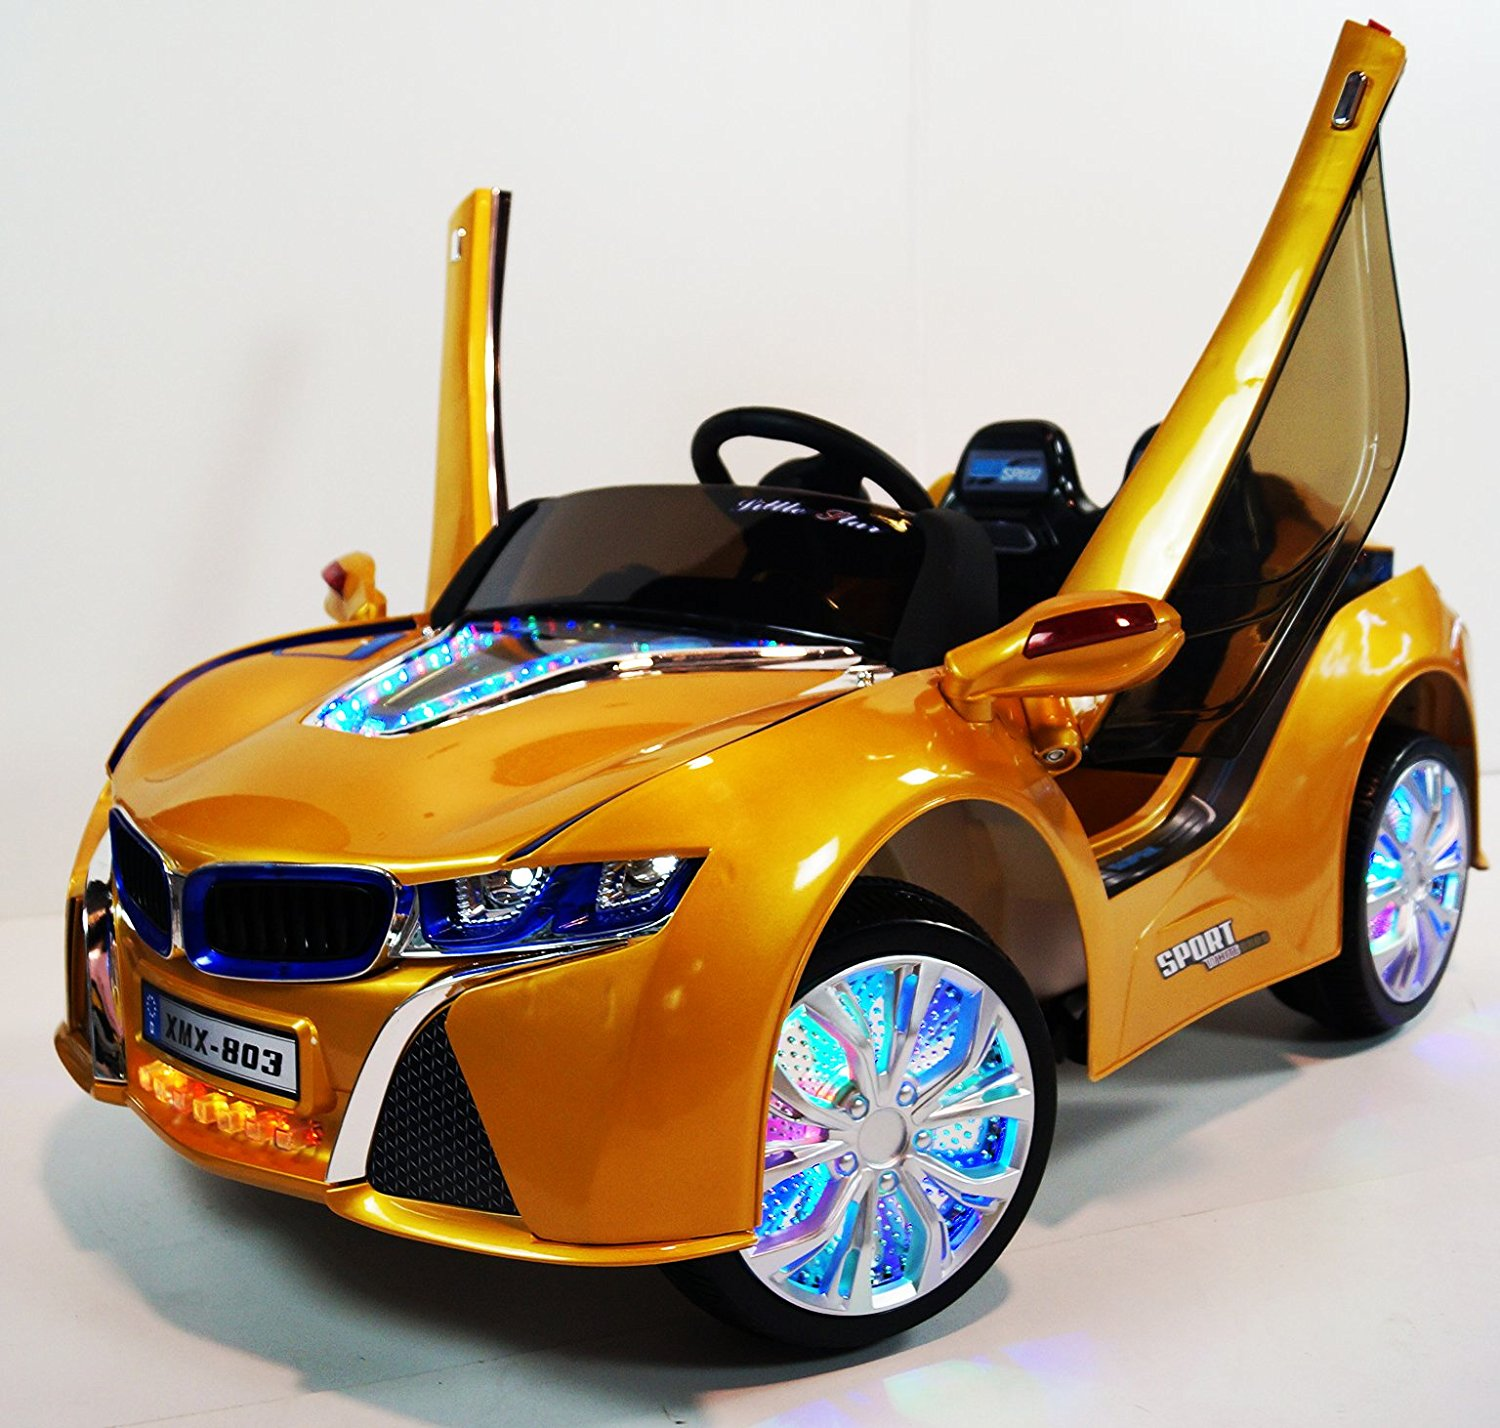 Buy Bmw I8 Xmx 803 Gold Yellow Style Ride On Car Remote Control 12v